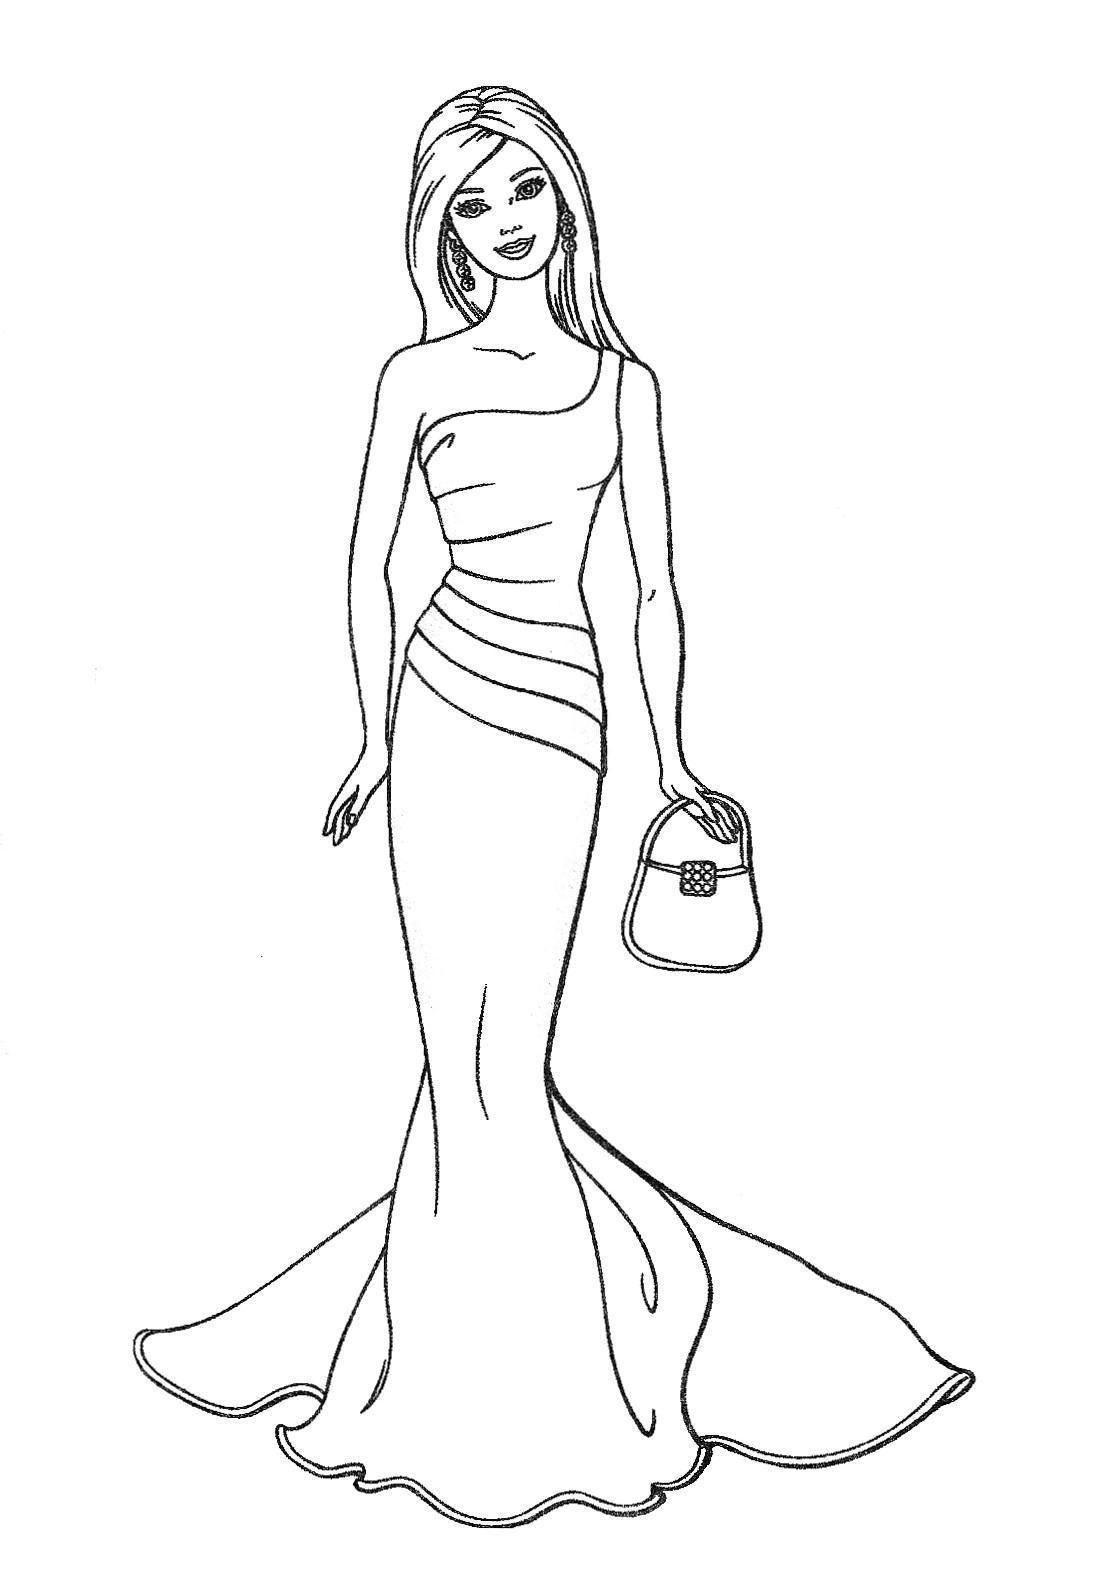 Barbie Movies Photo Barbie Coloring Pages Barbie Coloring Pages Princess Coloring Pages Barbie Drawing